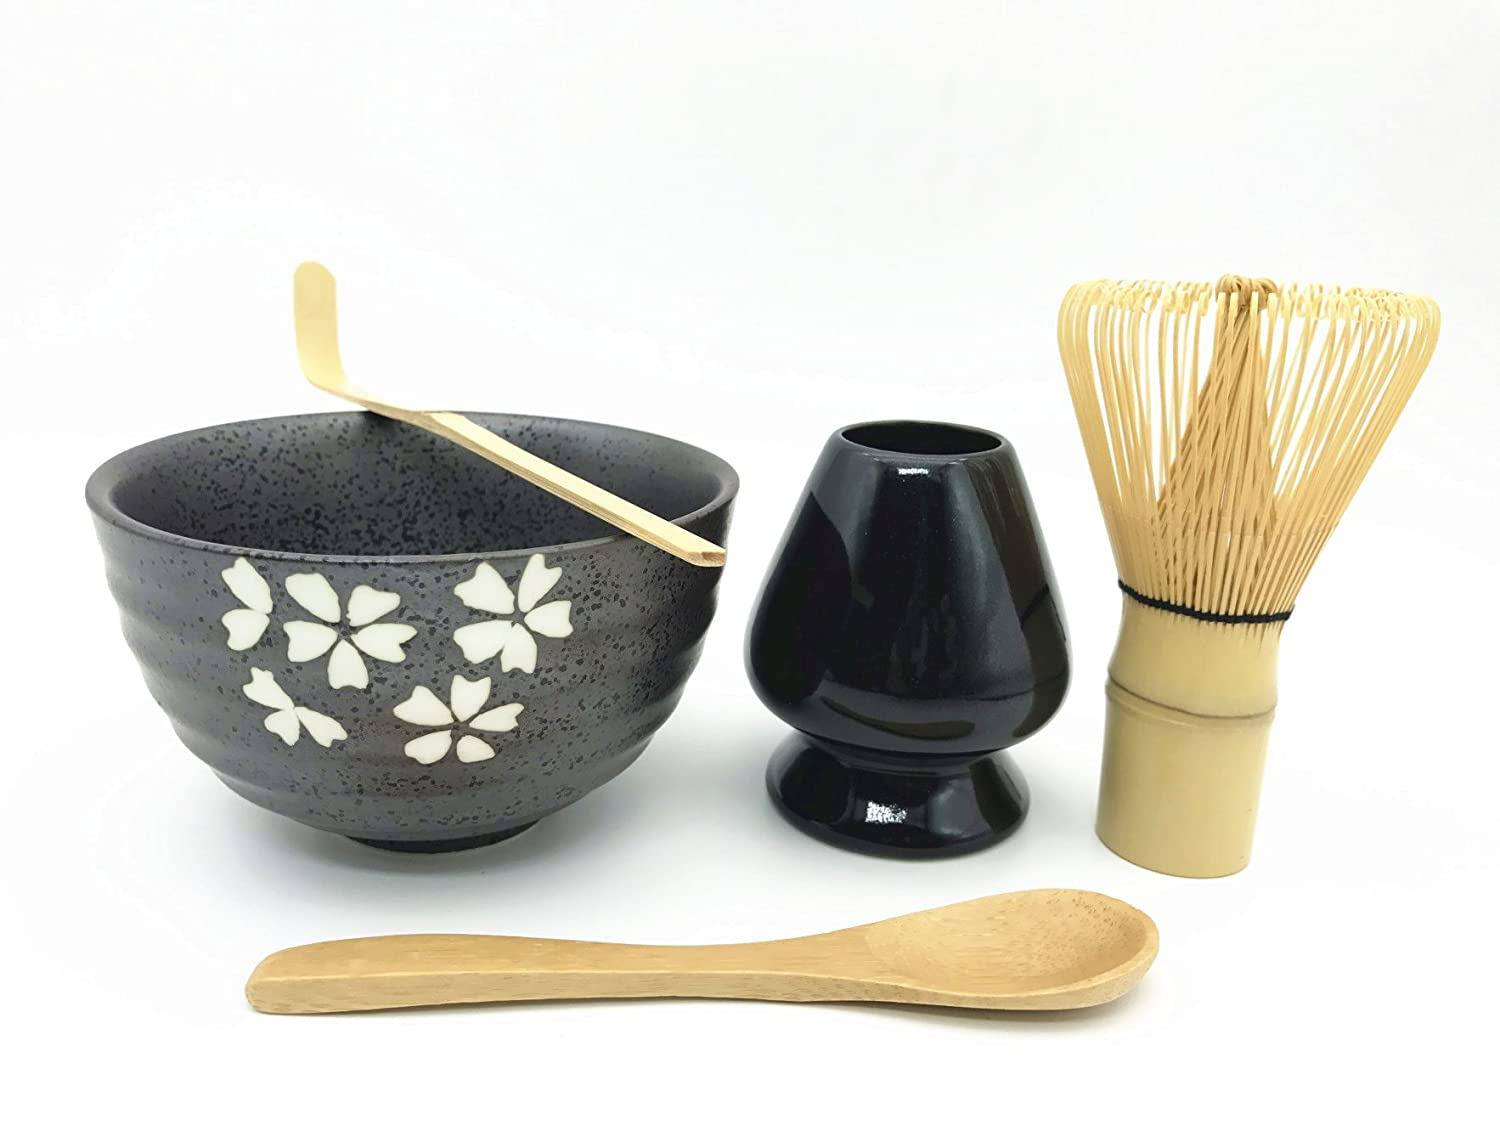 Home Soul Gift box Matcha Tea Ceremony Set, Include 5 Items:Bamboo Whisk Chasen, Whisk Holder, Bamboo Spoon & Scoop, Ceramic Matcha Bowl-Complete Matcha Start Up Kit (Black)